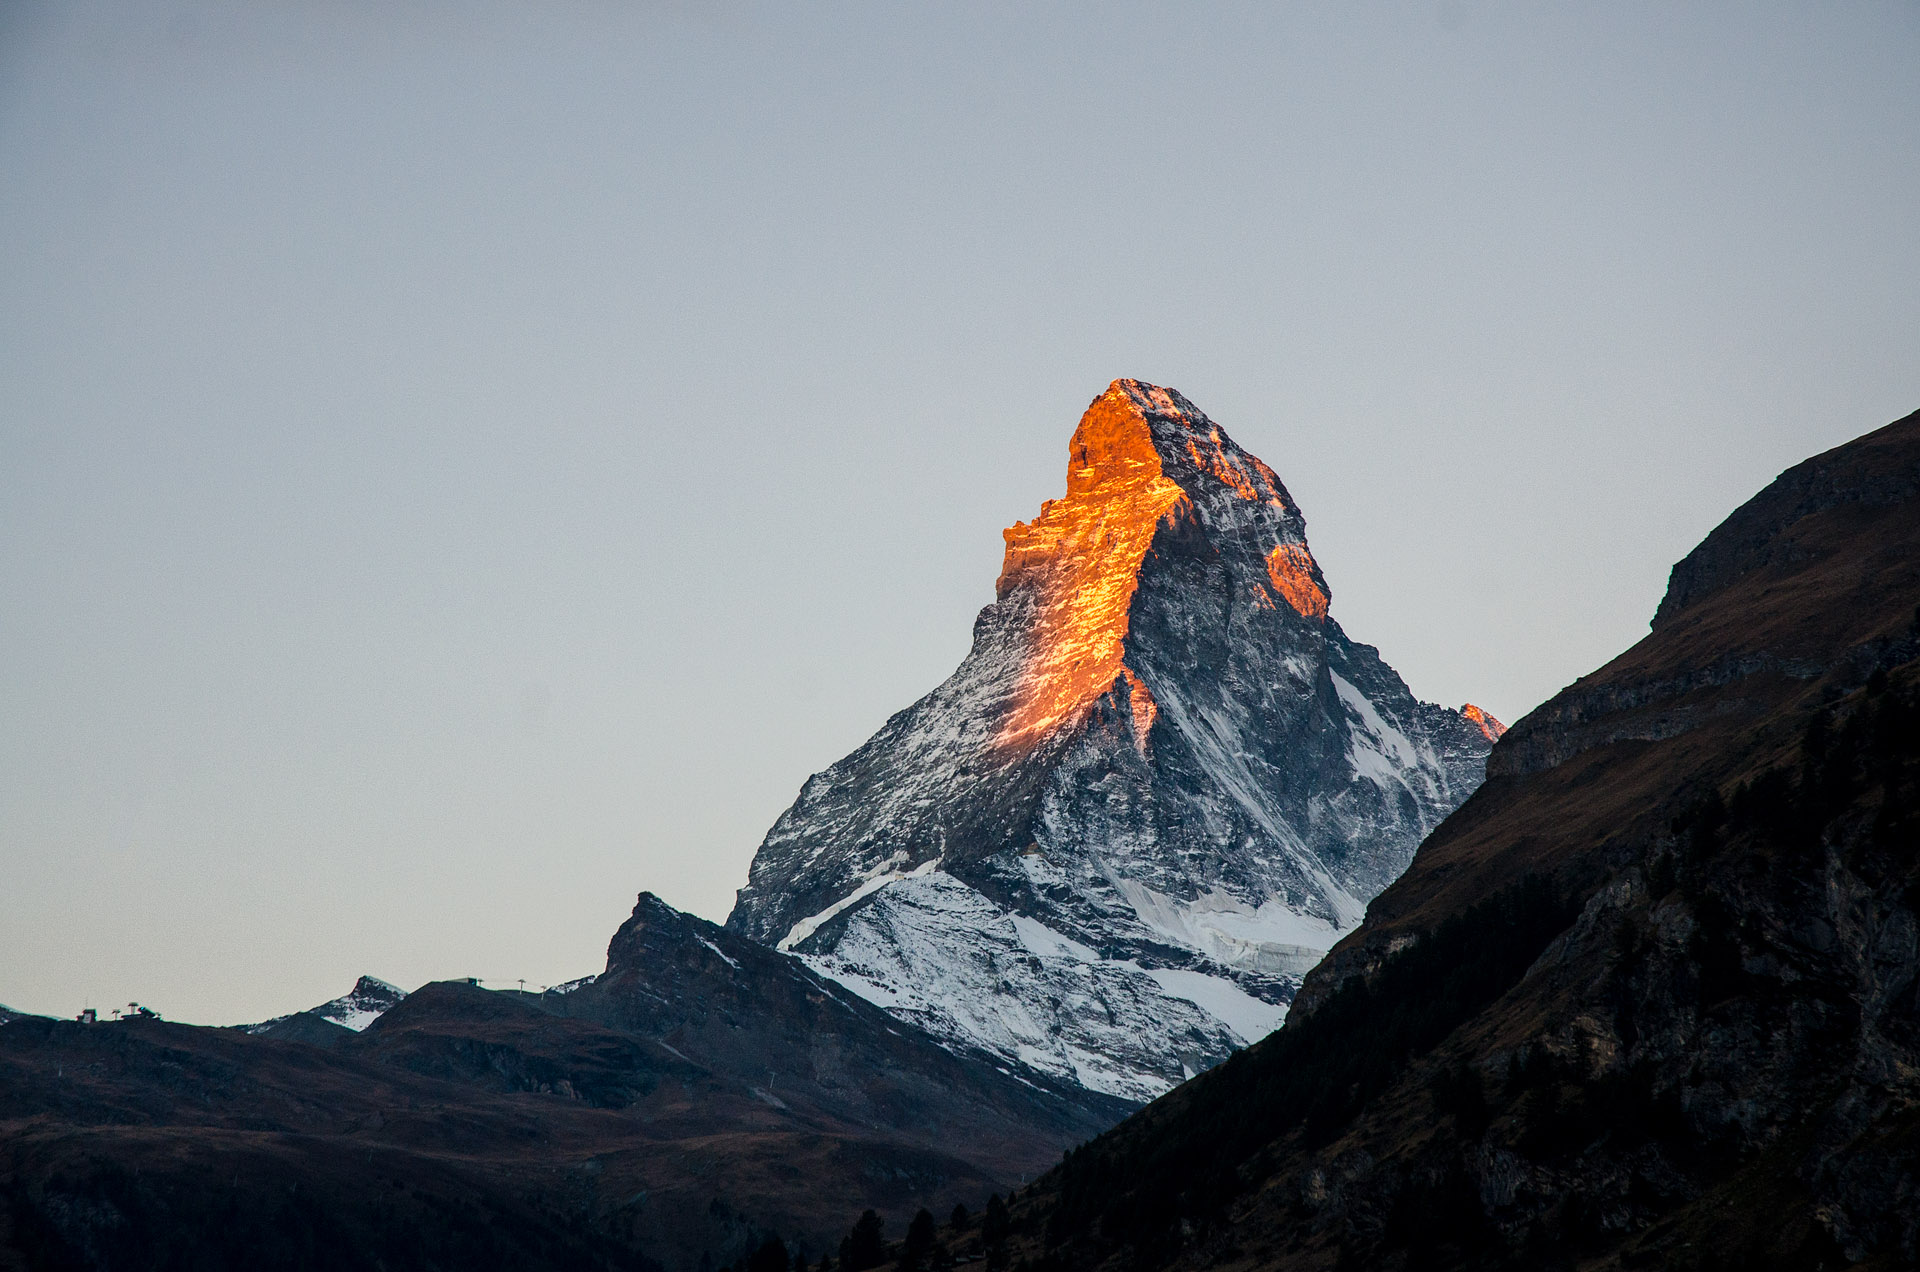 The Matterhorn from our apartment